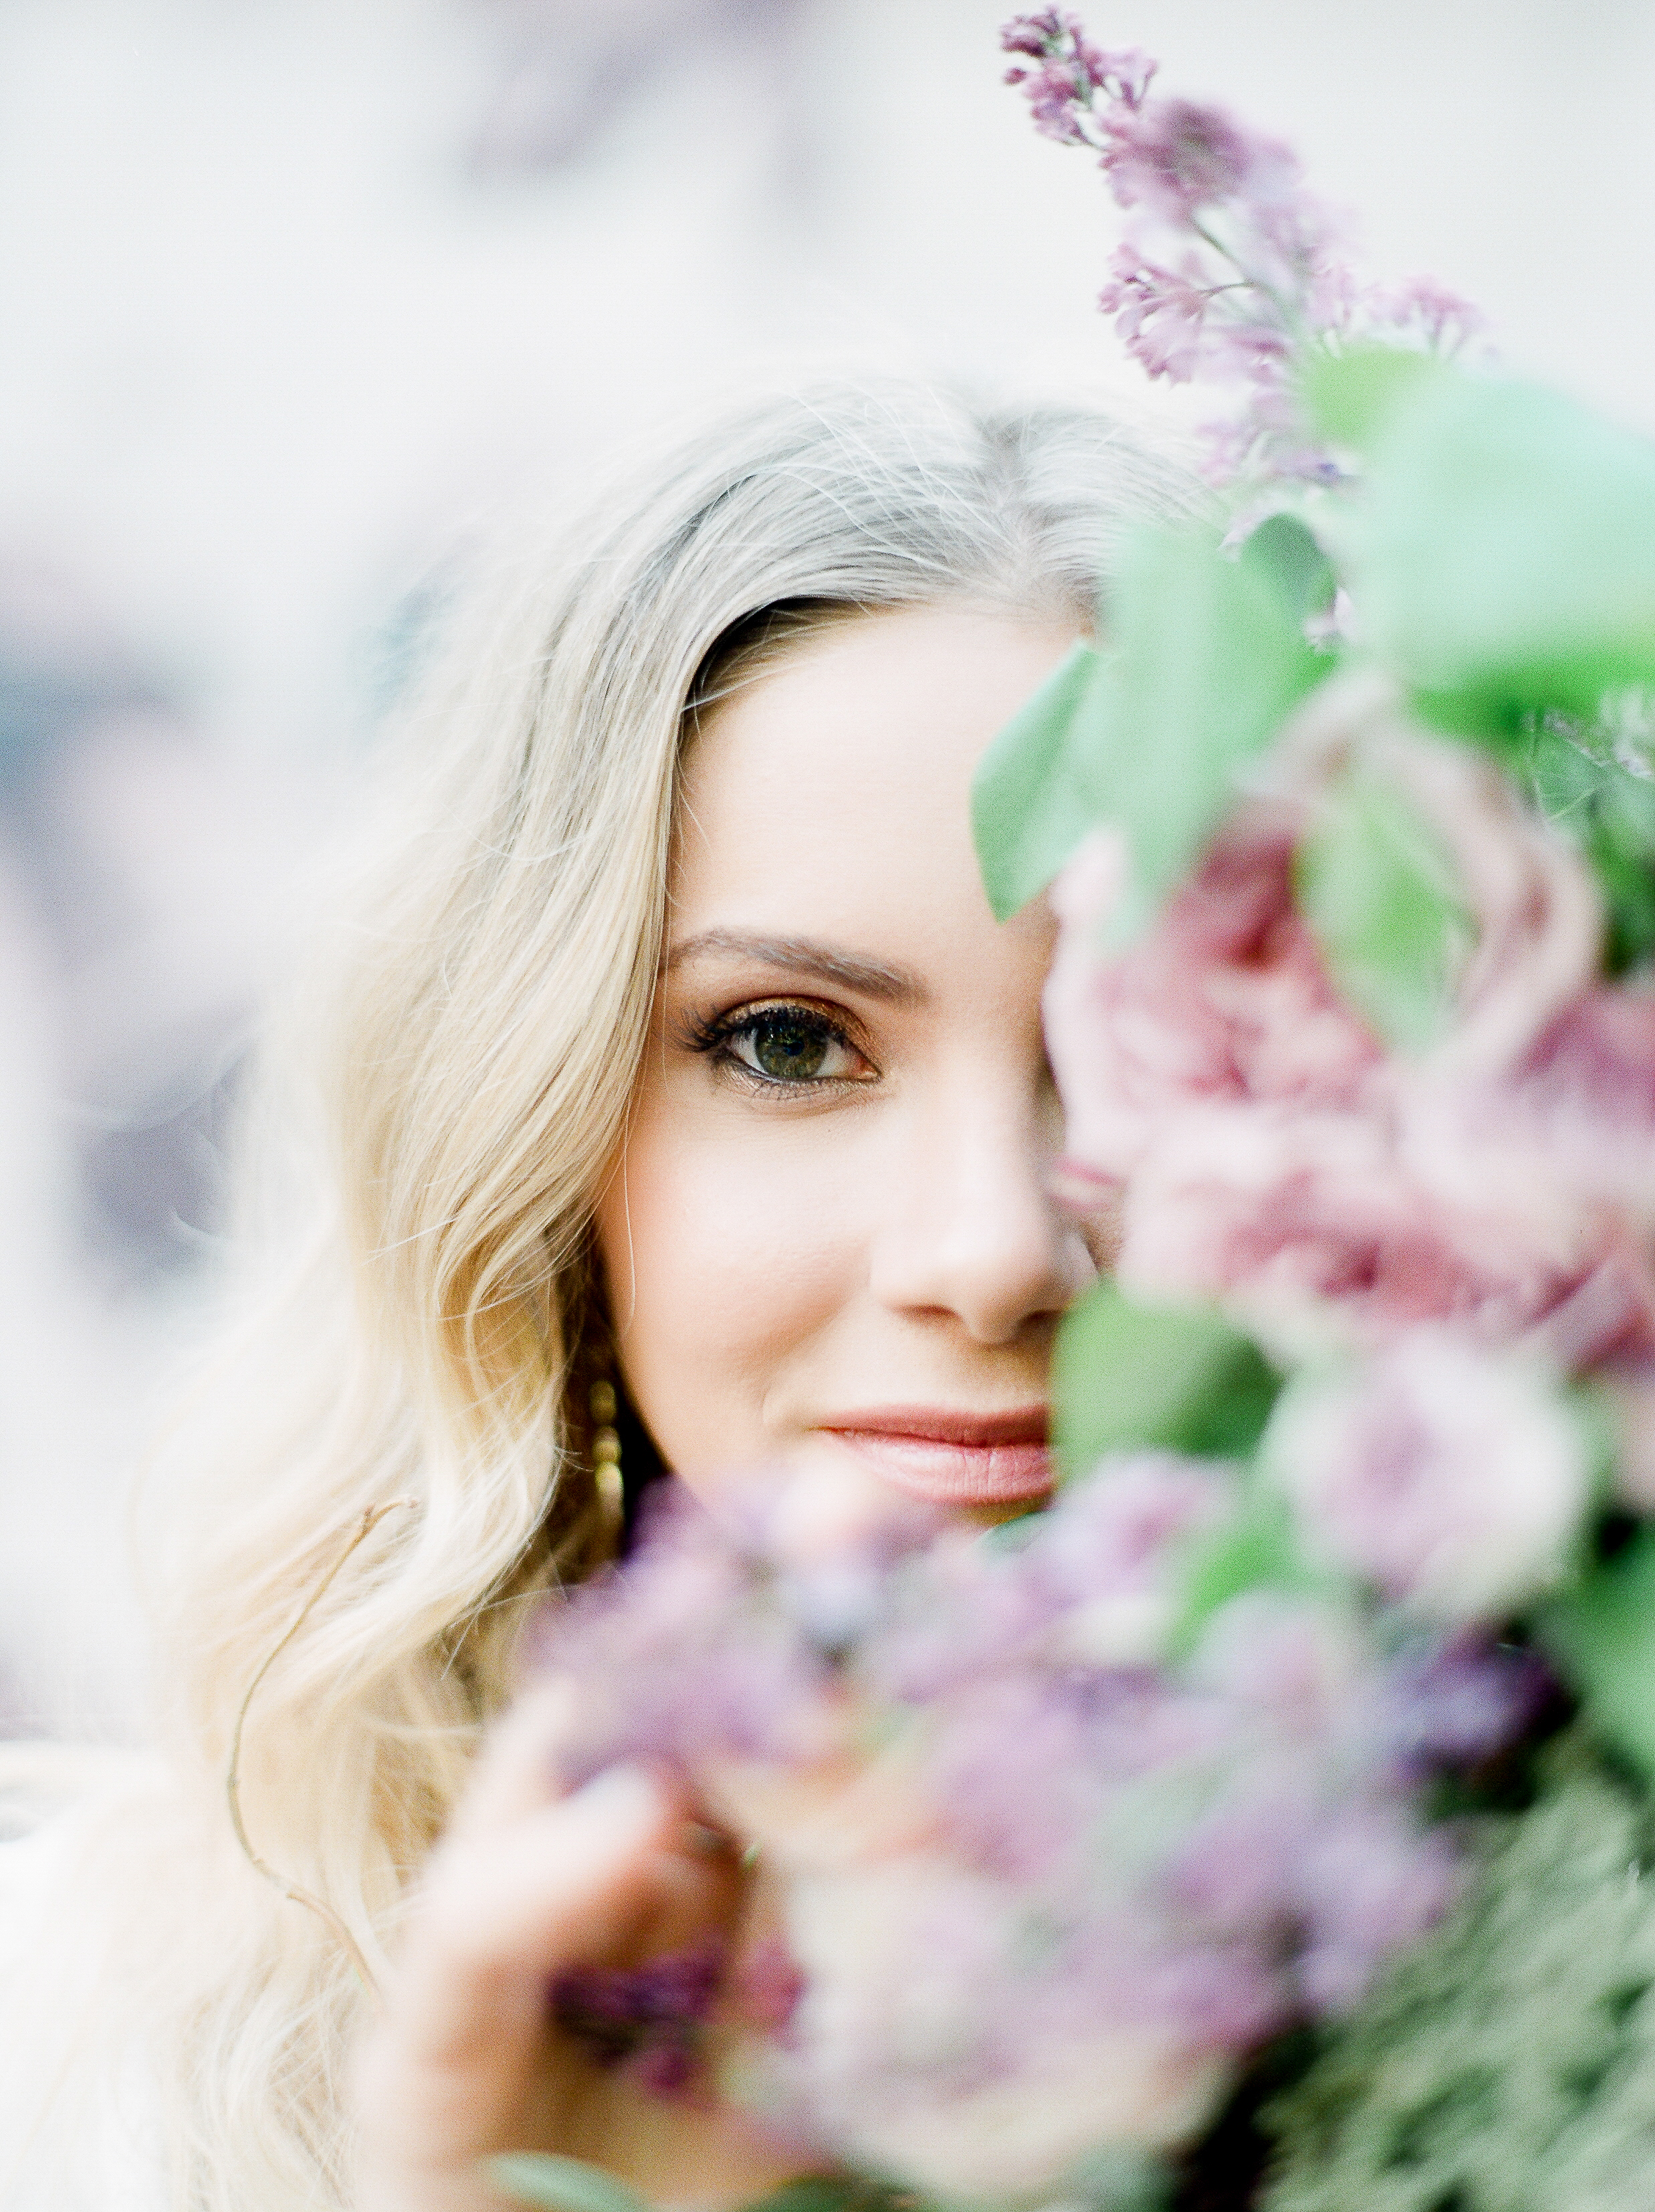 Julie Paisley, Wedding Photography, Destination Photographer, Lavender, Closeup, Bride Closeup, Flowers, Elopement, Elopement Photographer, Intimate,